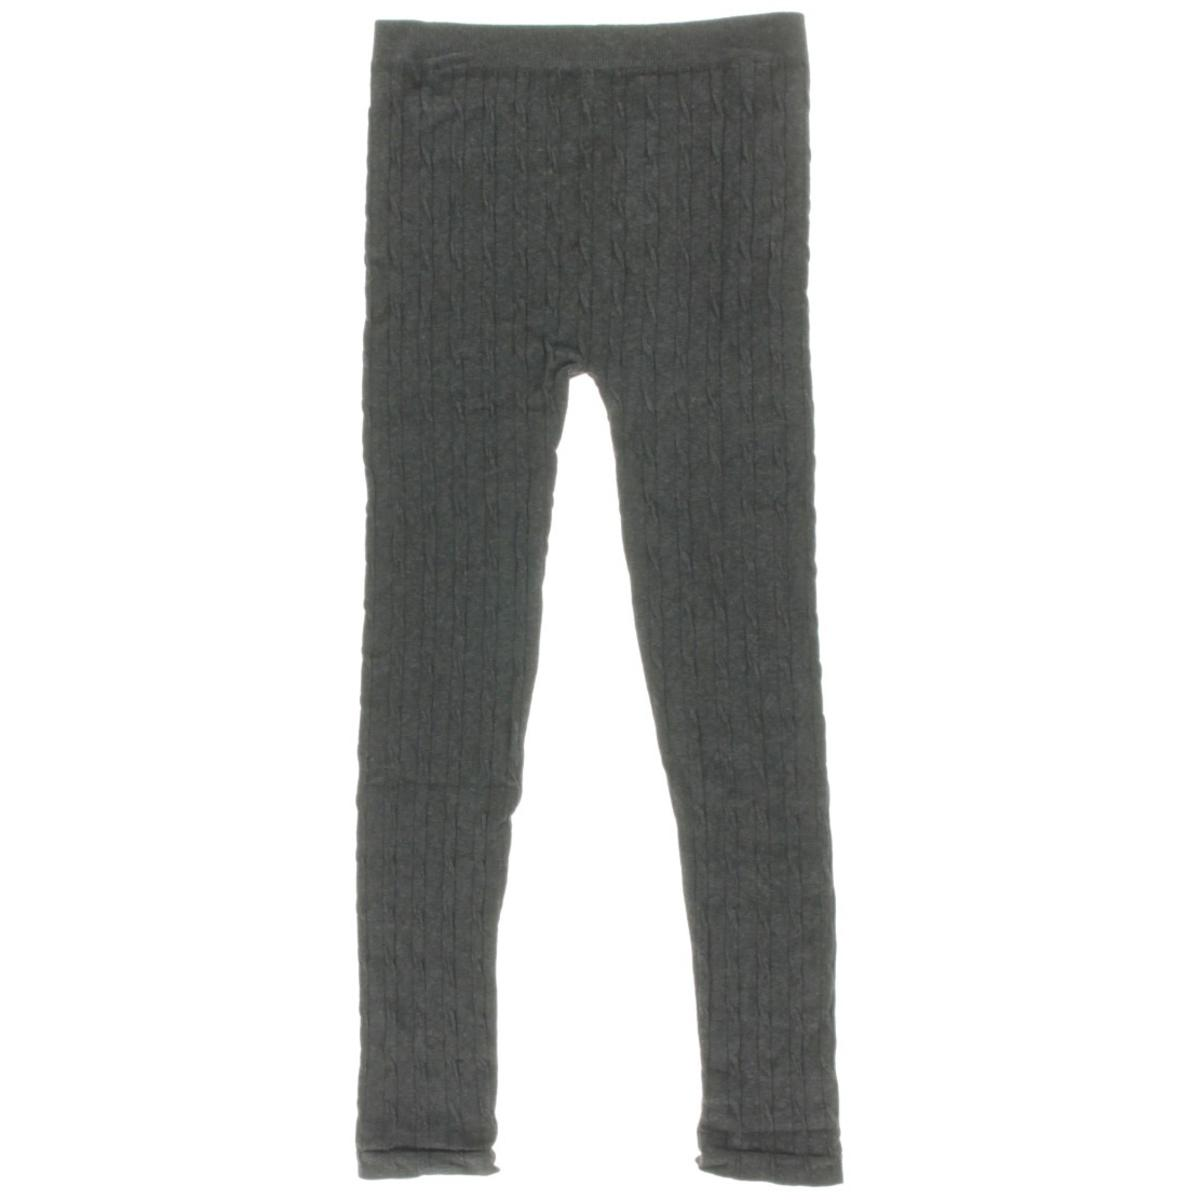 Dream Star 0839 Girls Gray Big Kid Cable Knit Sweater Leggings 7 16